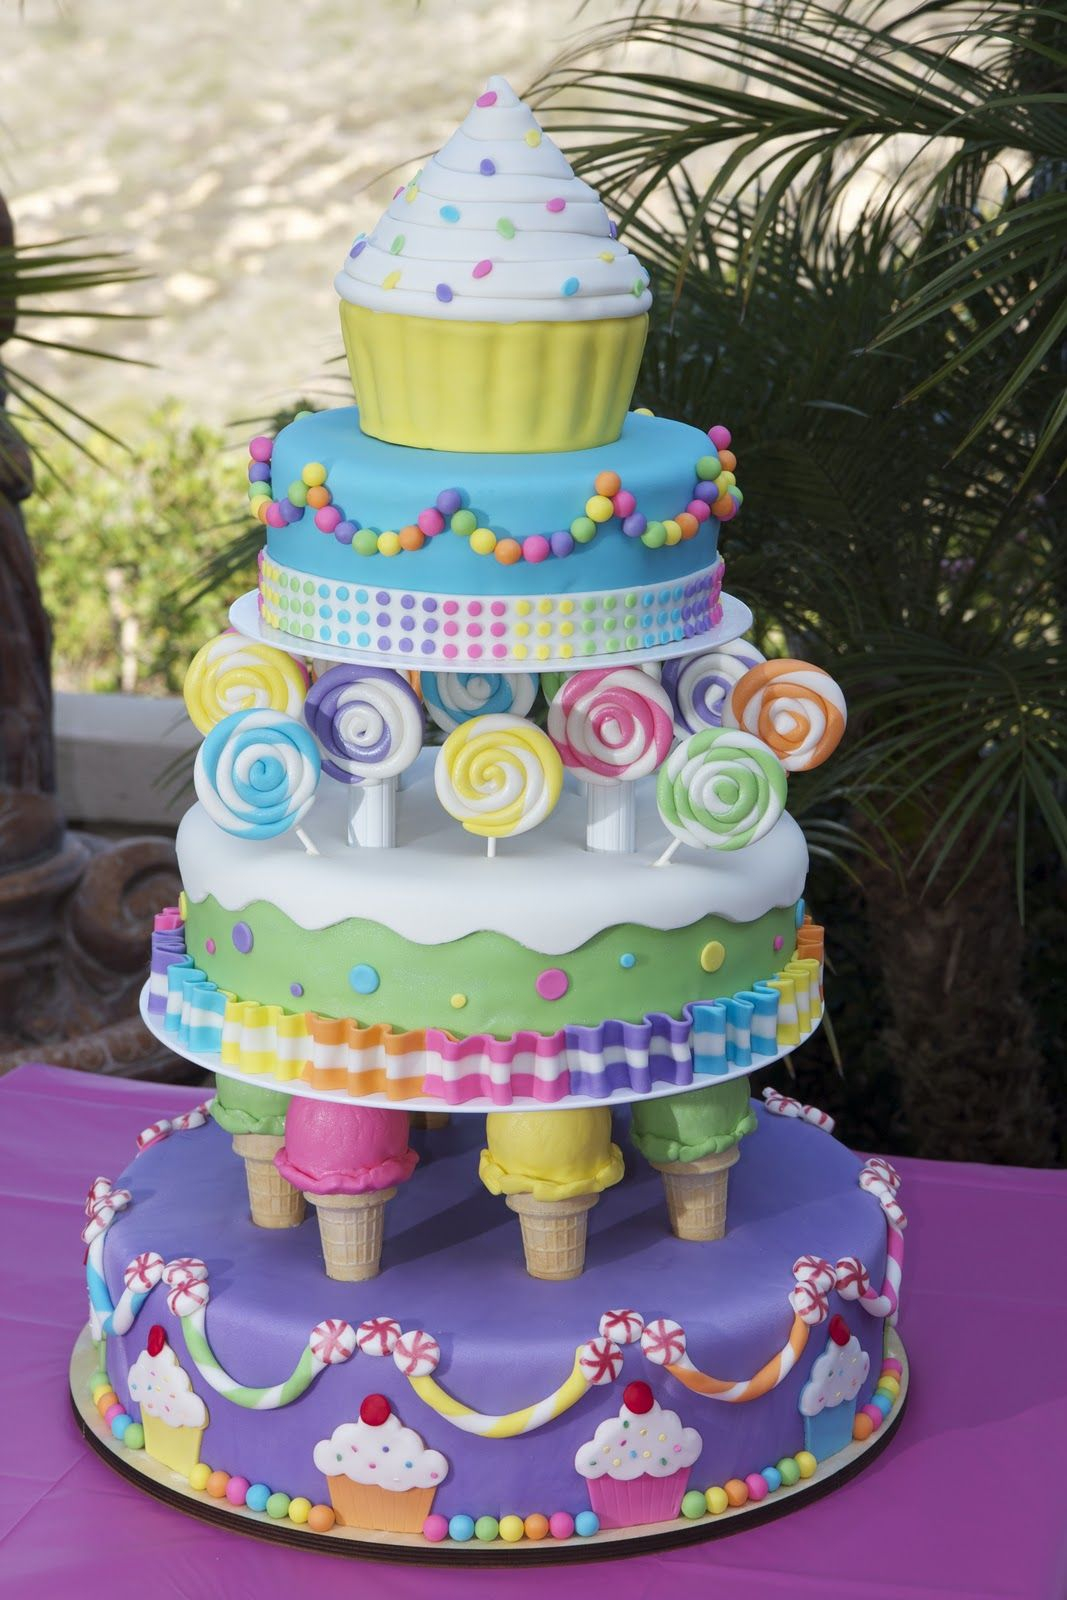 Candyland Birthday Cake Kaylynn Cakes Large Themed